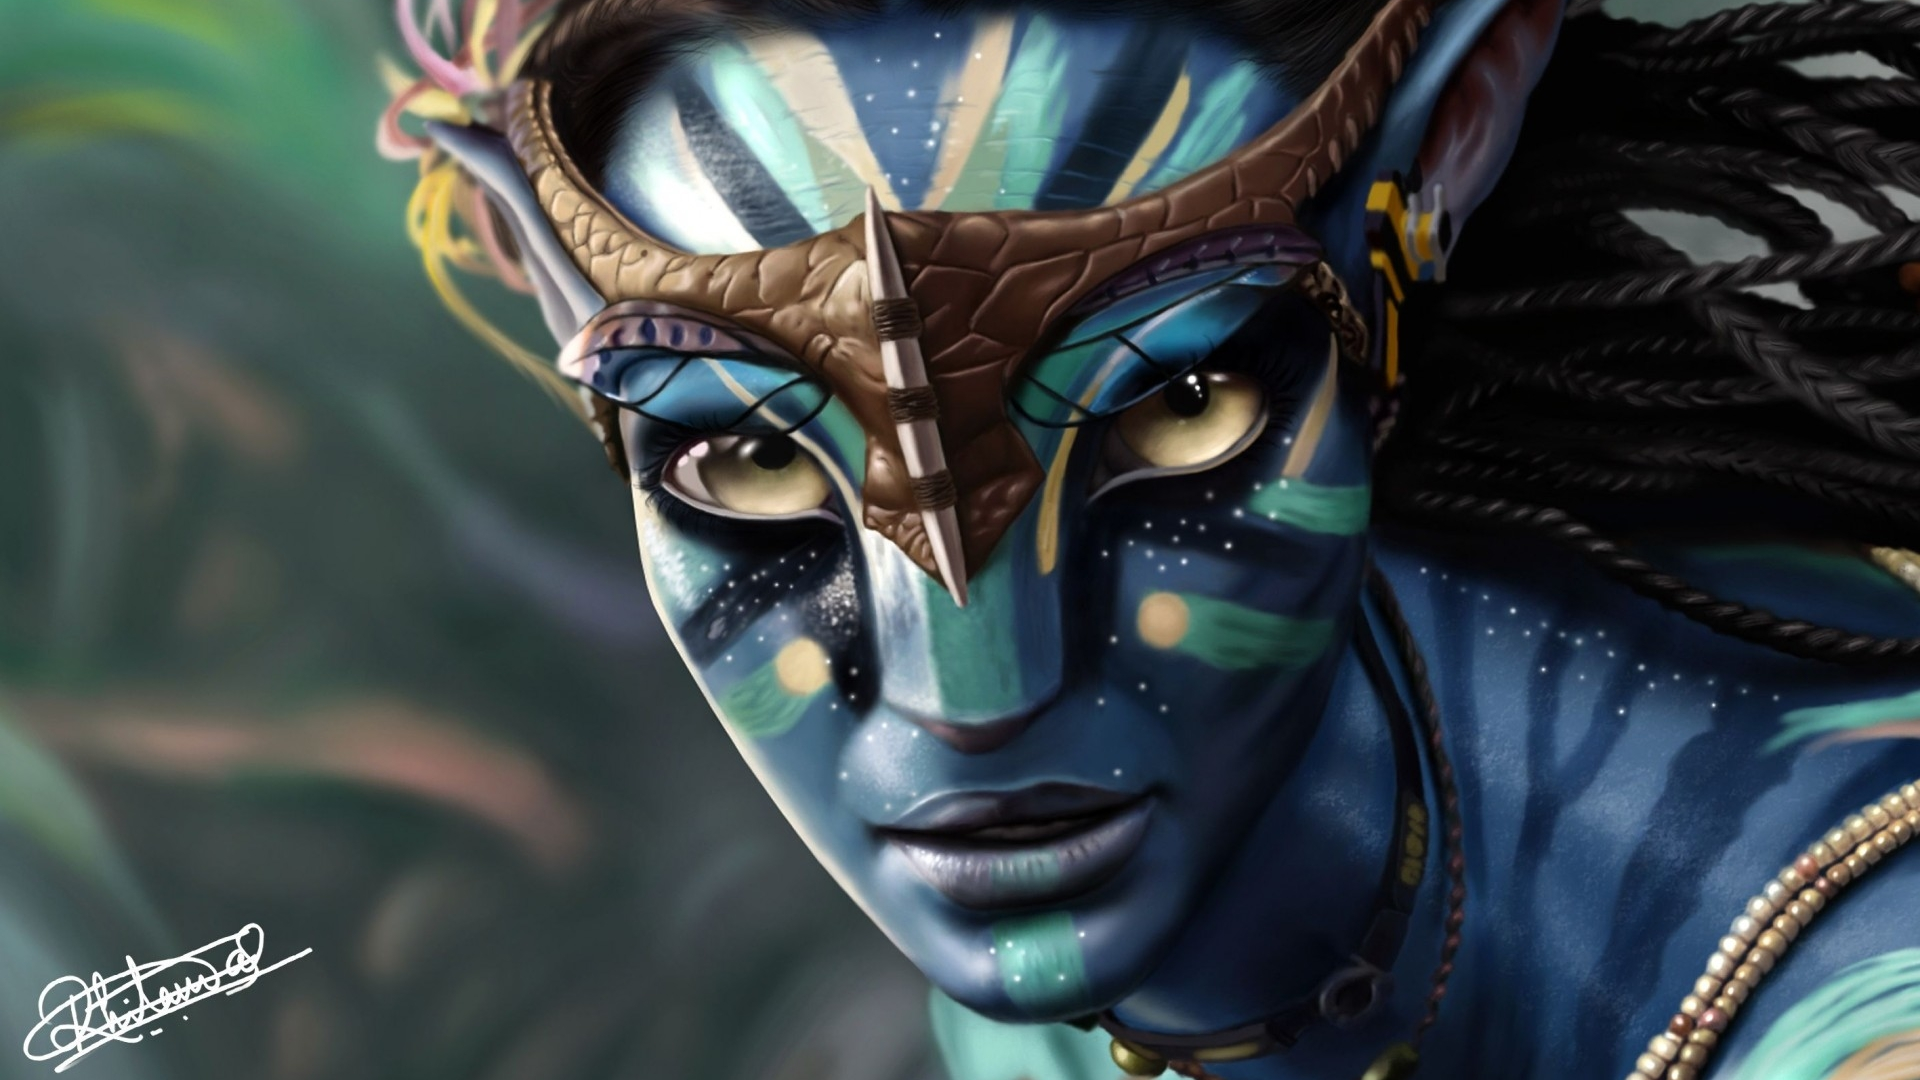 avatar full hd wallpaper and background image | 1920x1080 | id:204901